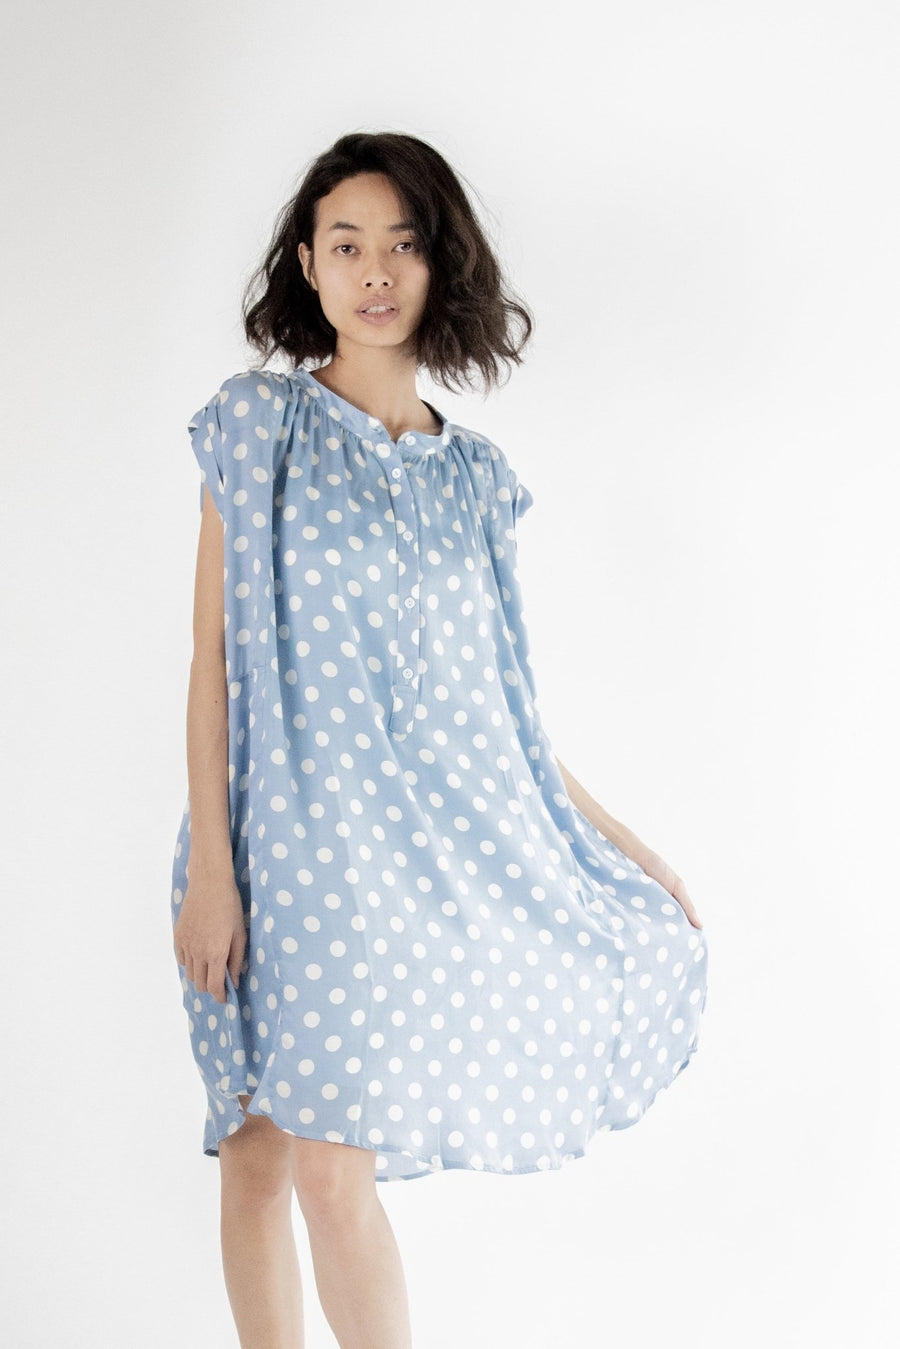 MODAL POLKA DOT LIGHT BLUE DRESS AMANDA MOMO NEW YORK